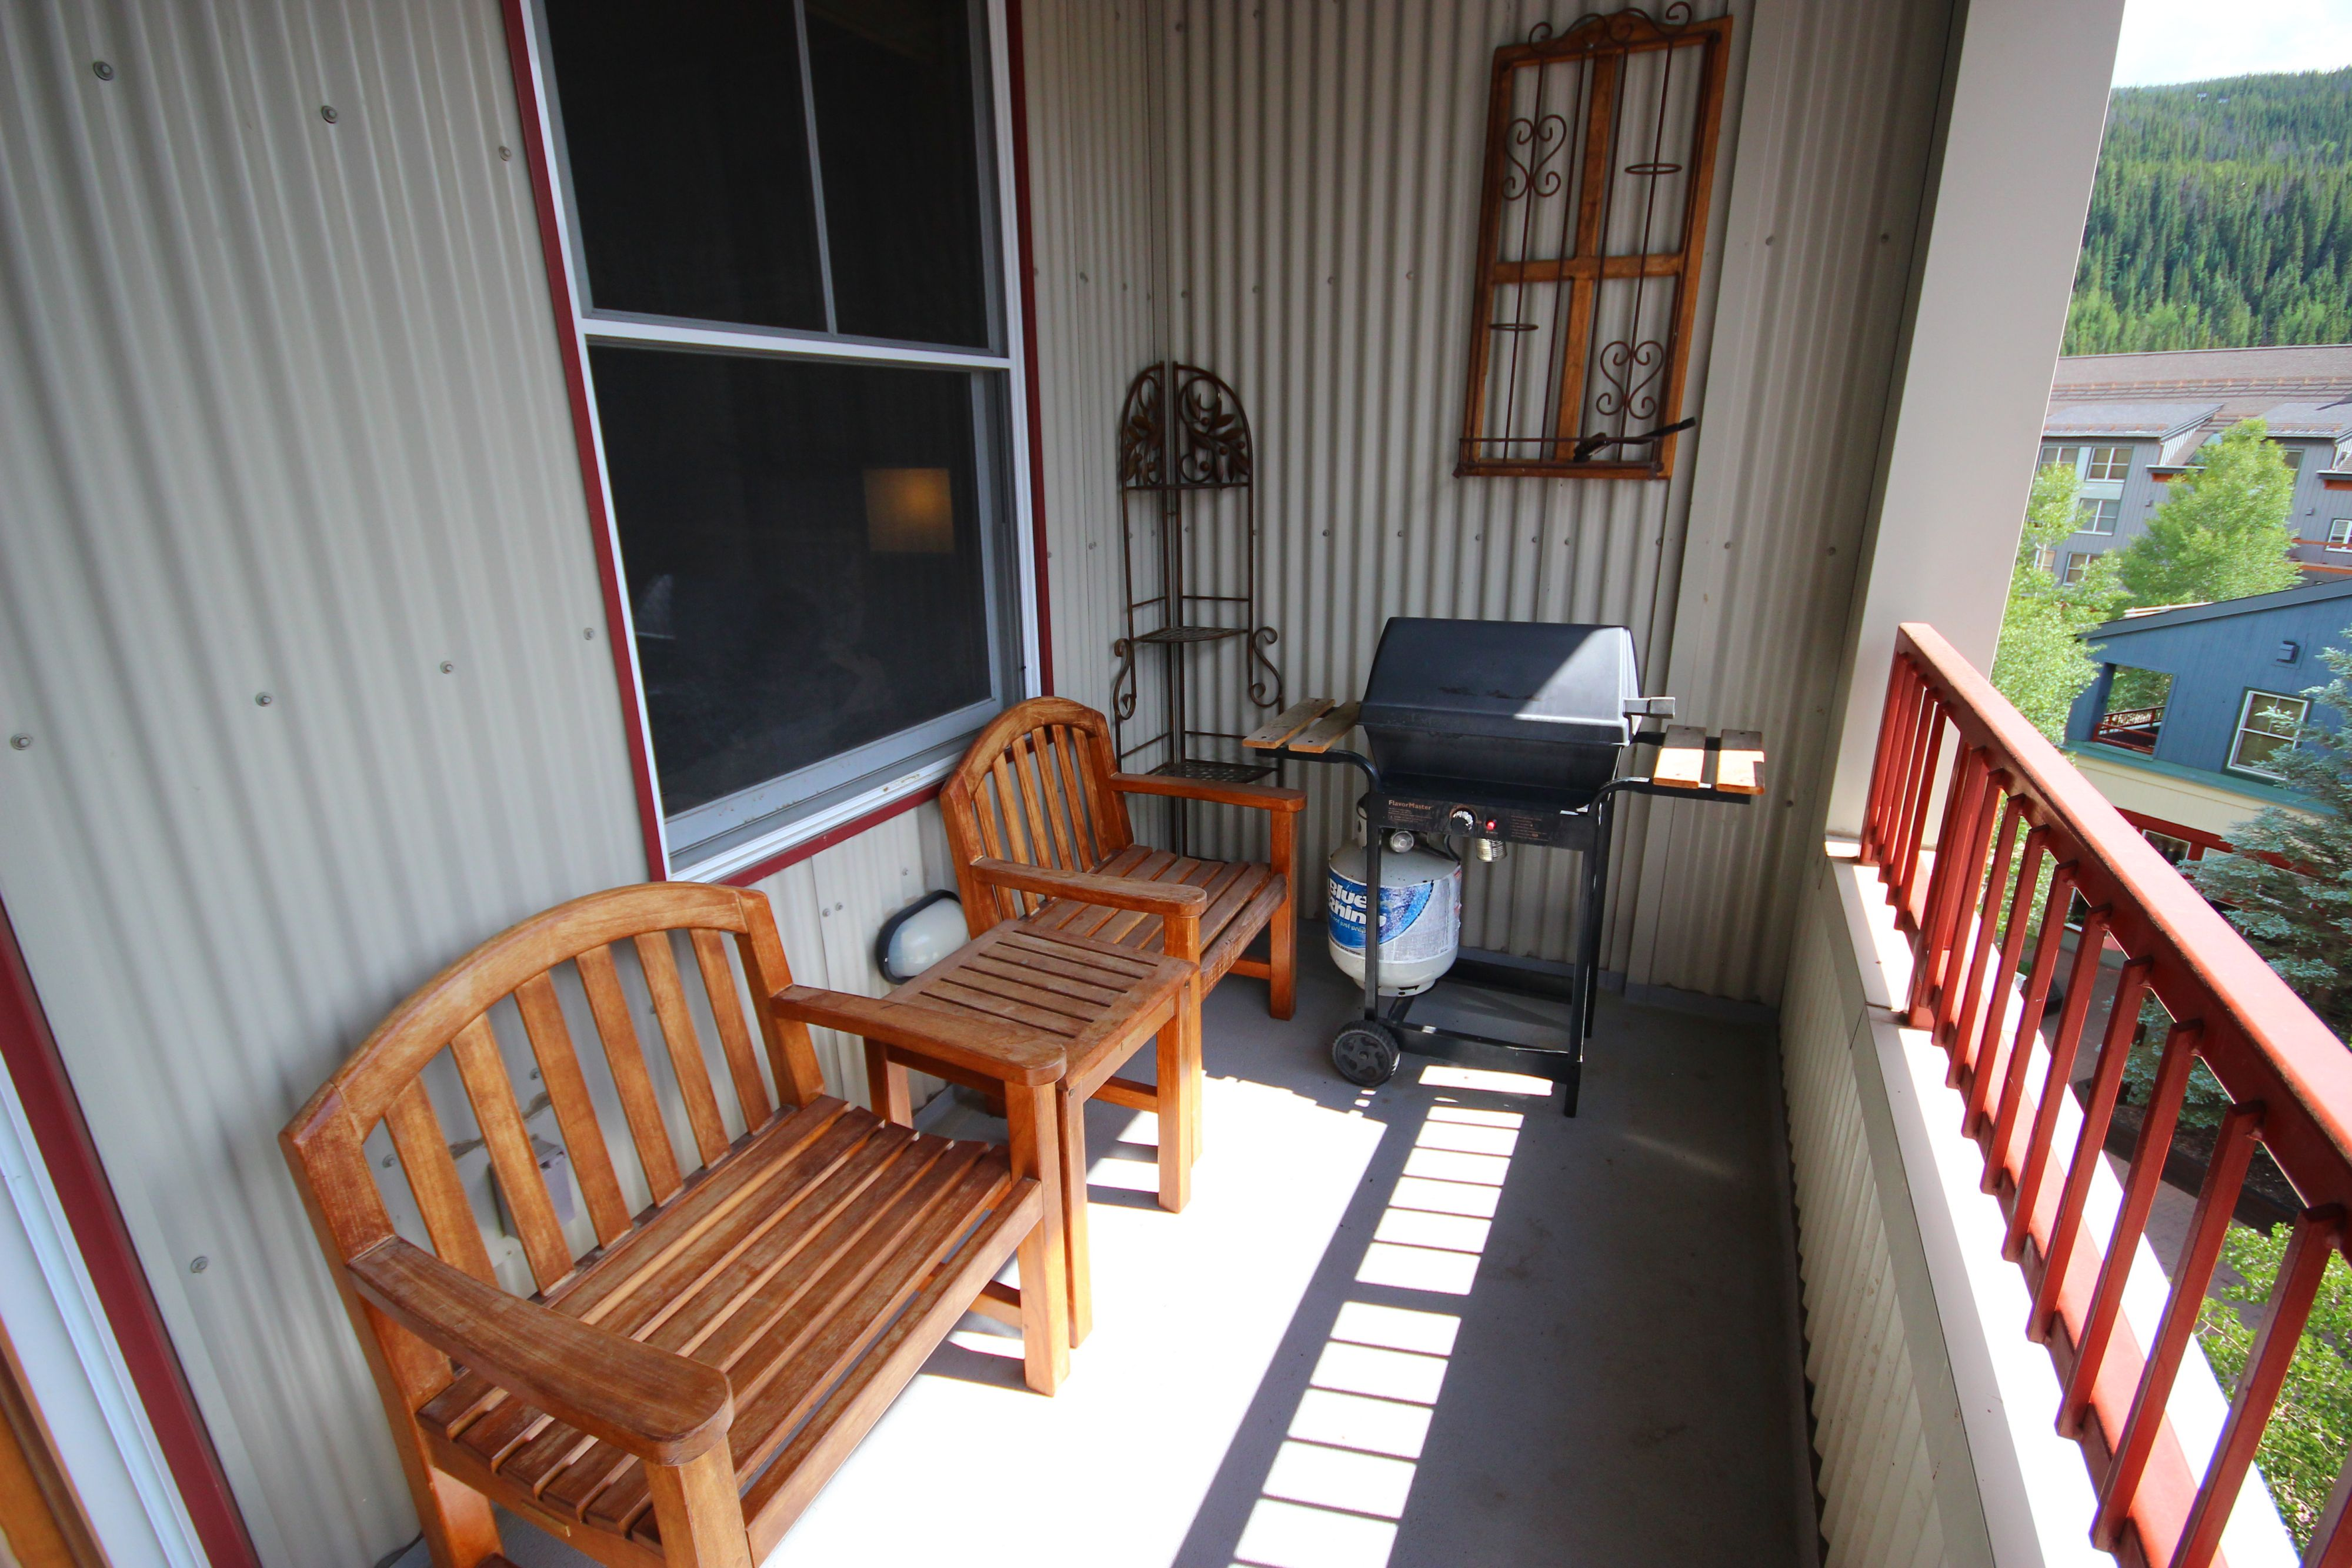 Porch with space to relax and enjoy the view